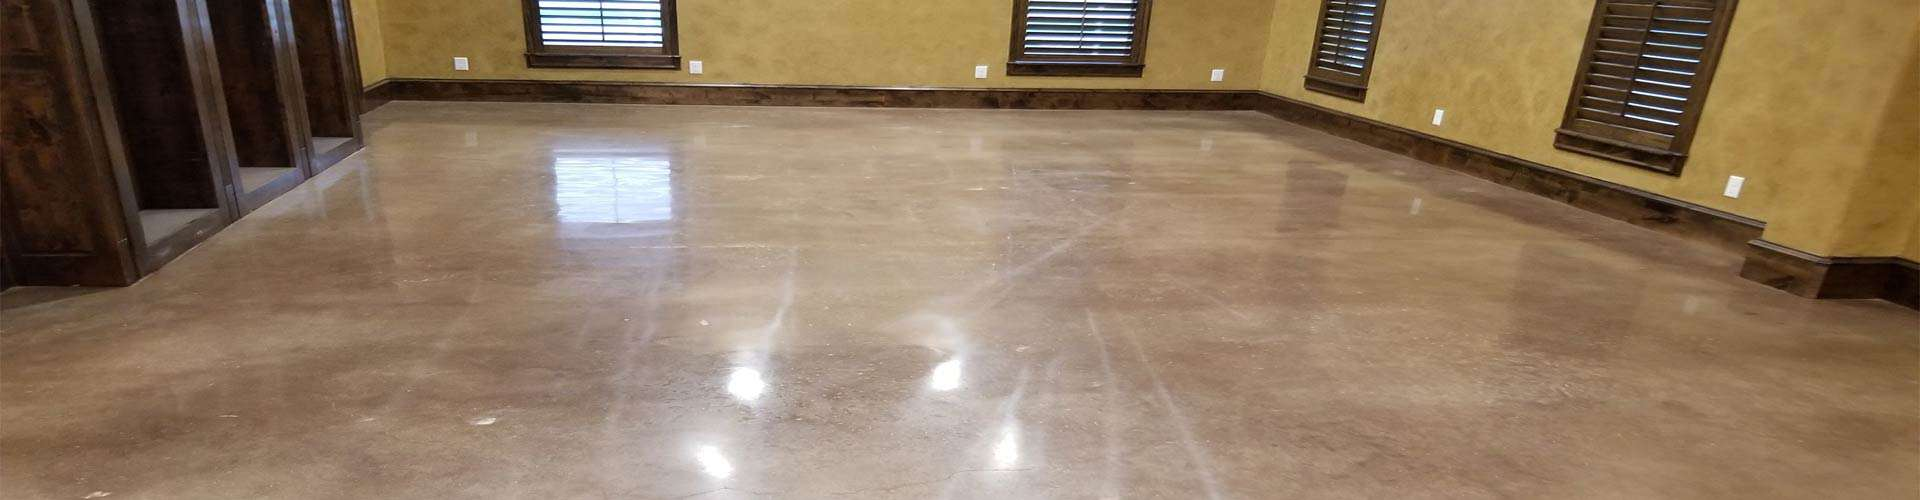 Polished Office Floor Concrete